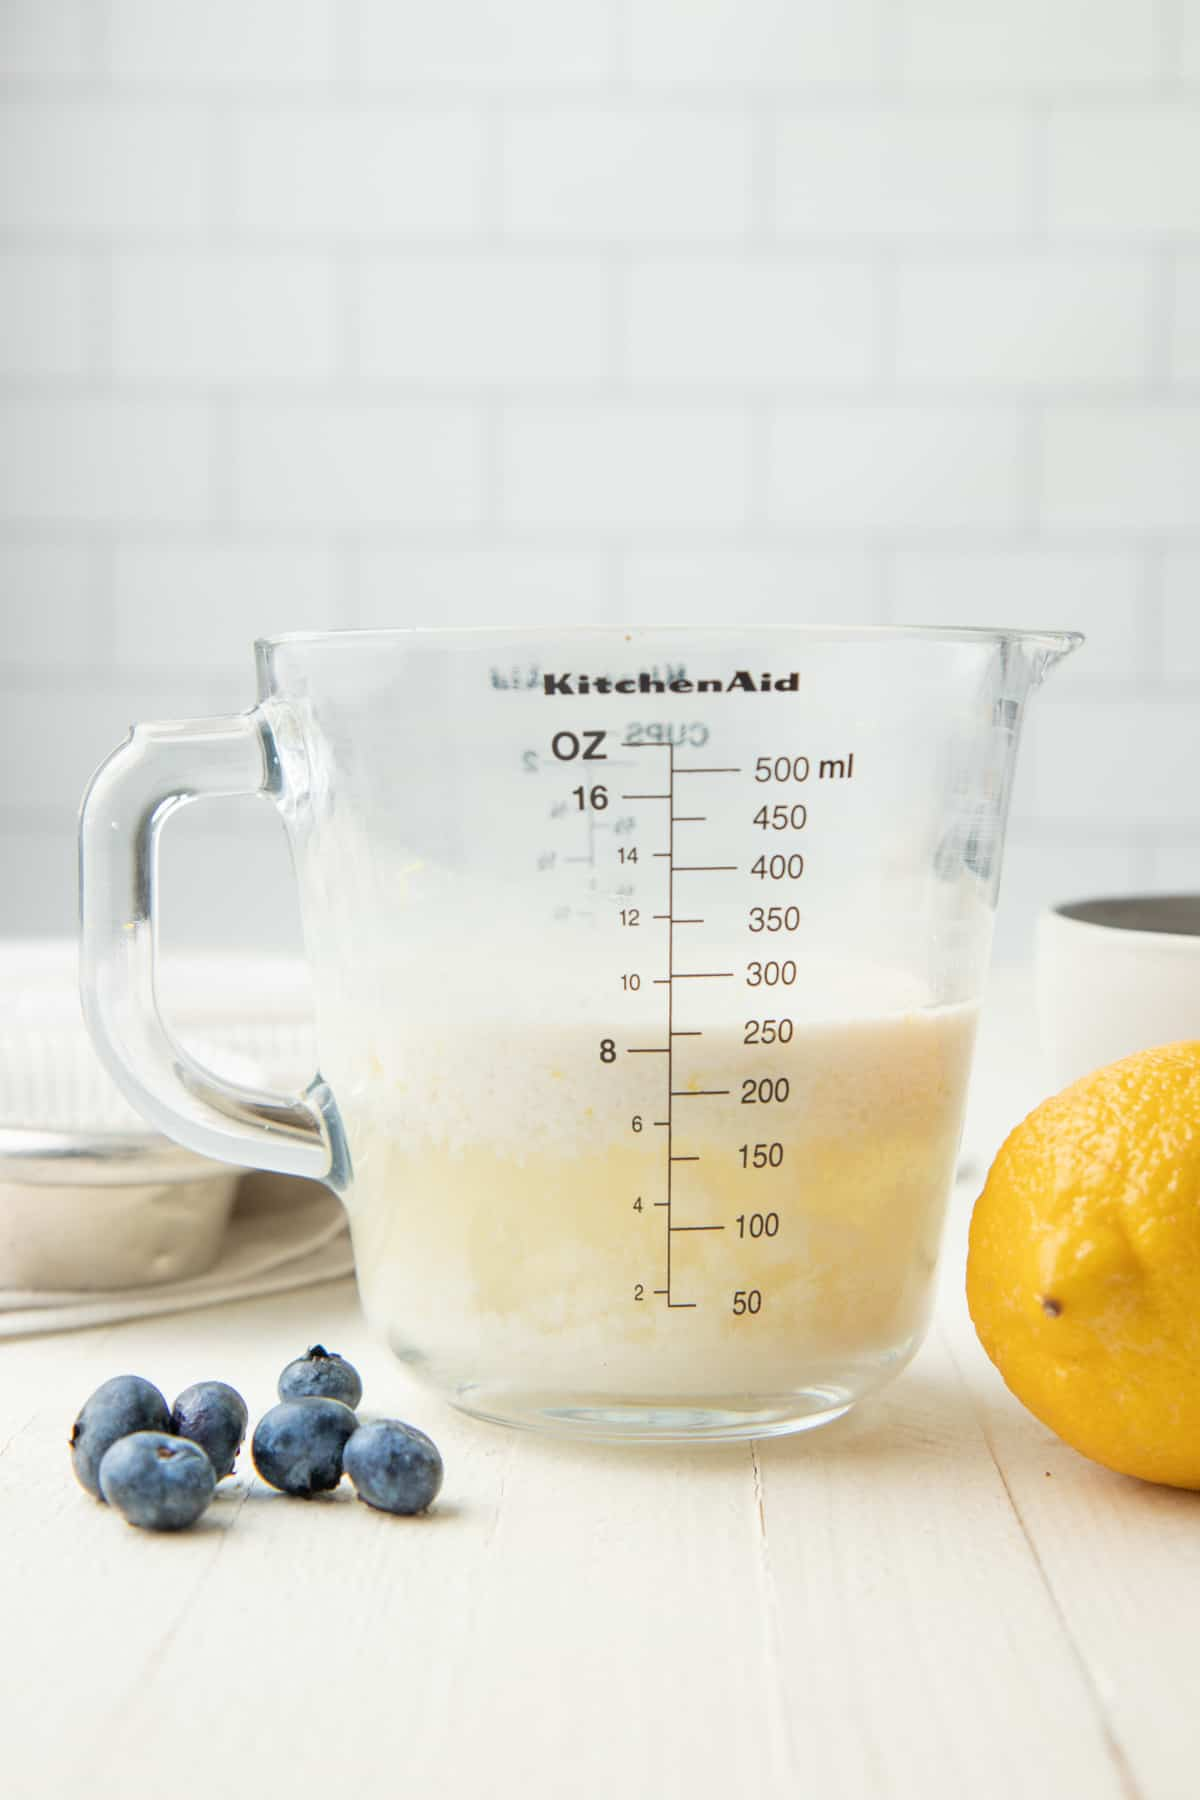 Curdled plant-based milk sits in a glass measuring cup.